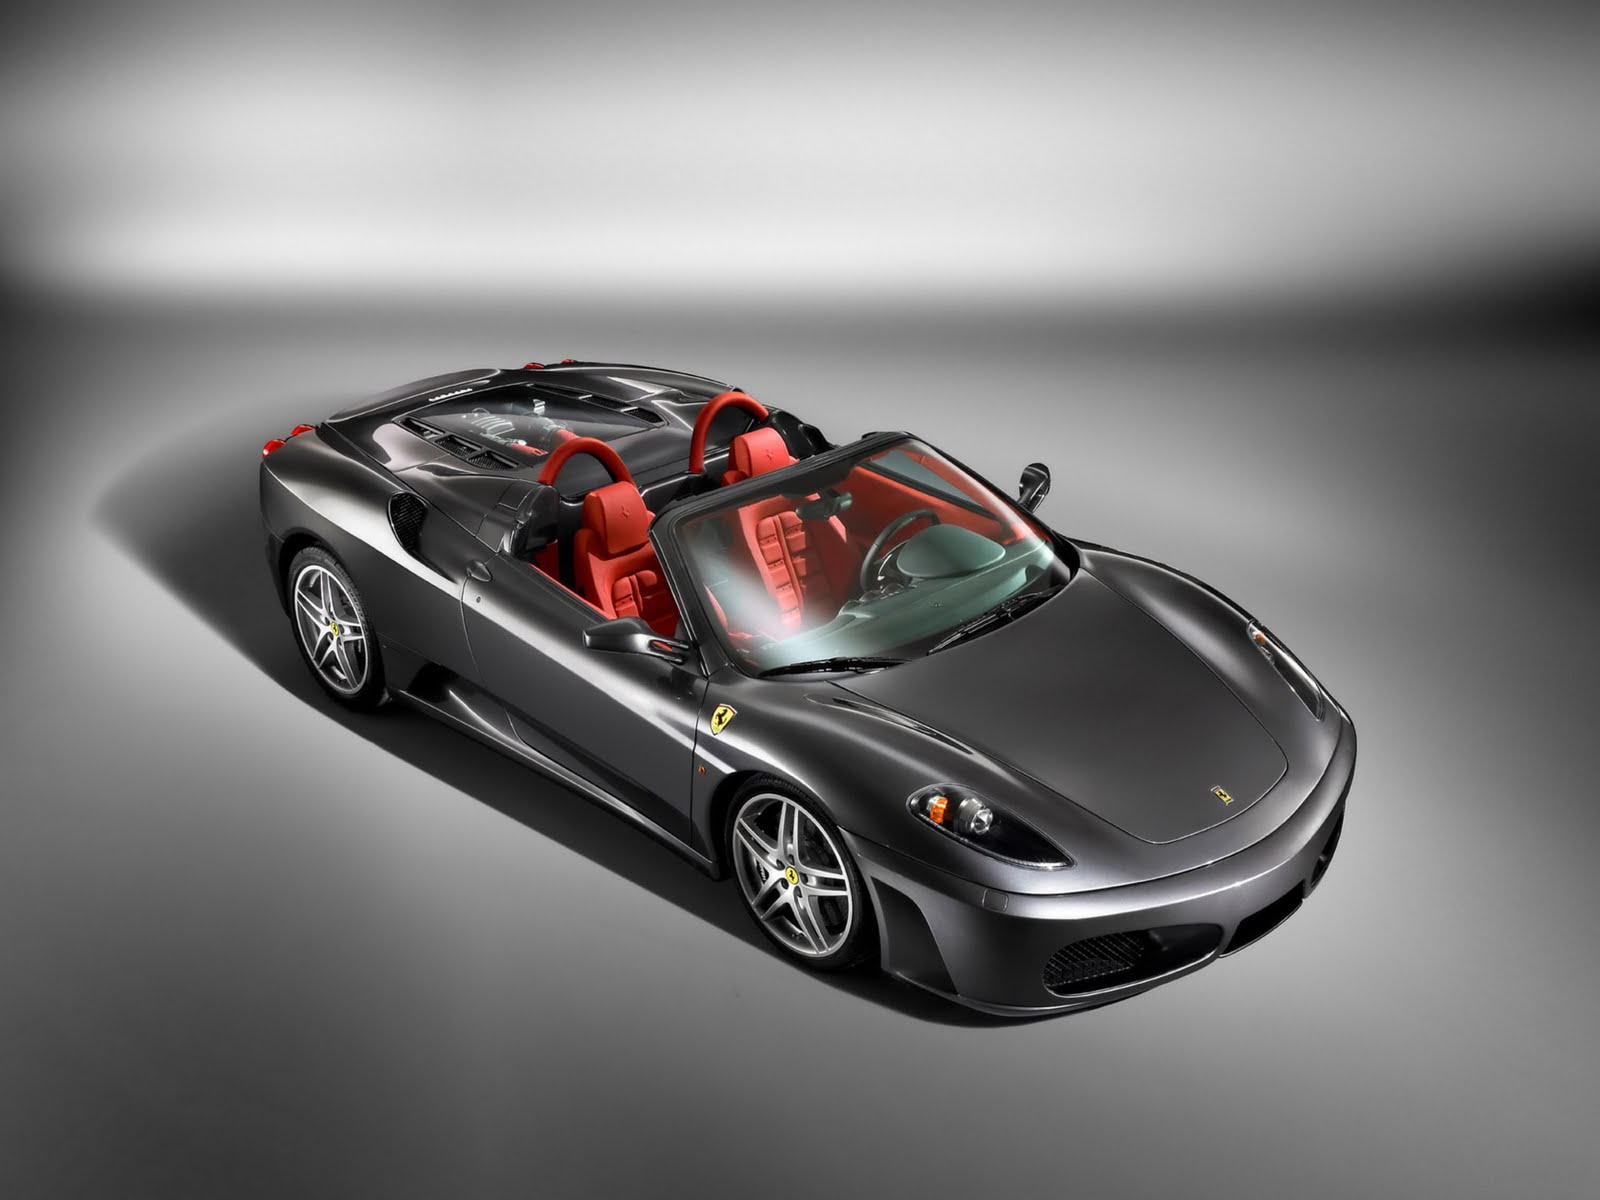 New Ferrari Car,ferrari Car Images,black Ferrari Cars Wallpapers,ferrari  Cars Pictures,ferrari Race Cars,ferrari Racing Cars,cool Sports Cars